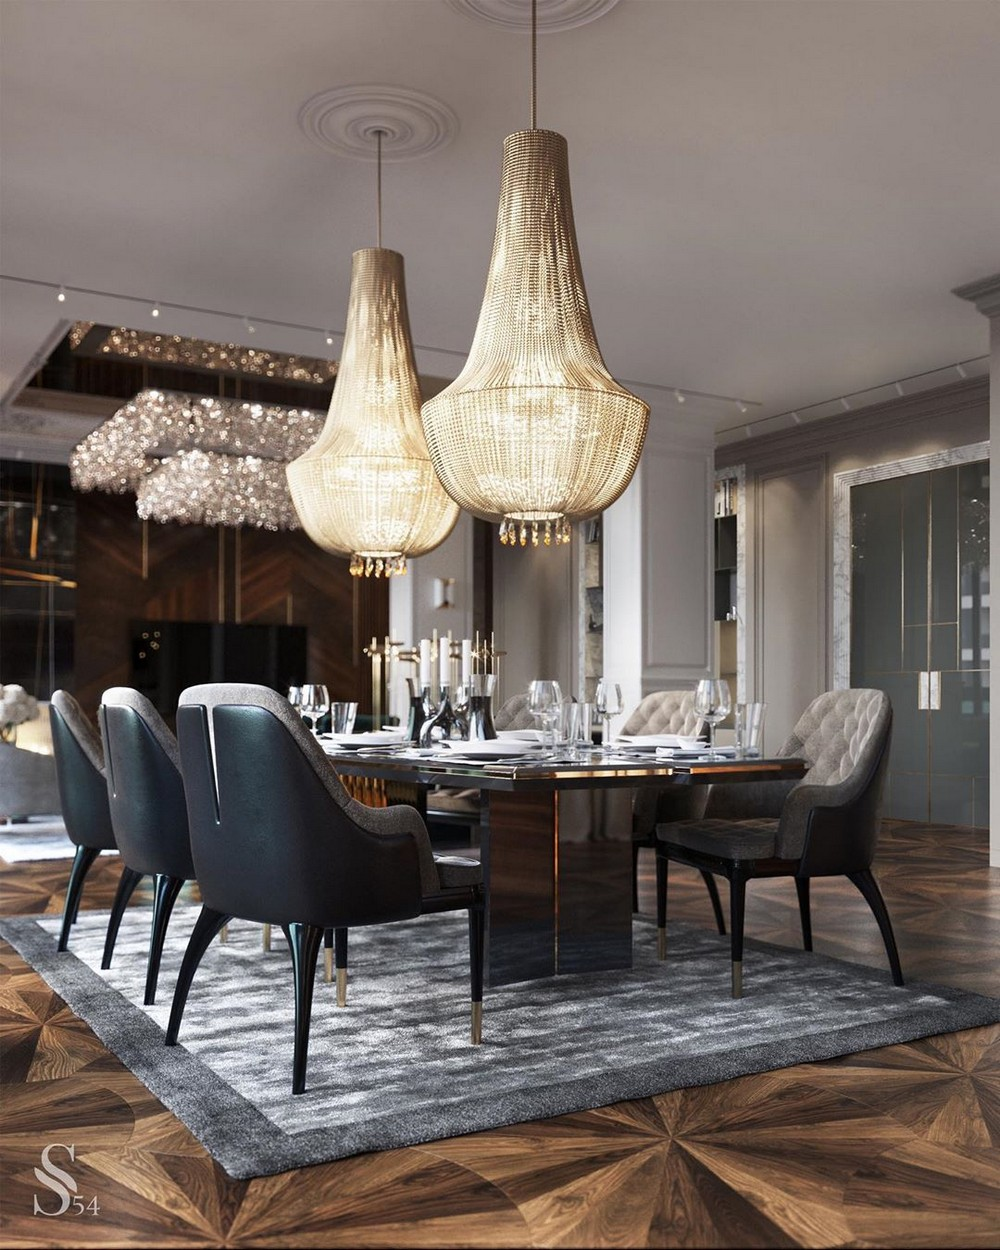 The Best Dining Room Designs You Will Find On Instagram dining room designs The Best Dining Room Designs You Will Find On Instagram 1 1